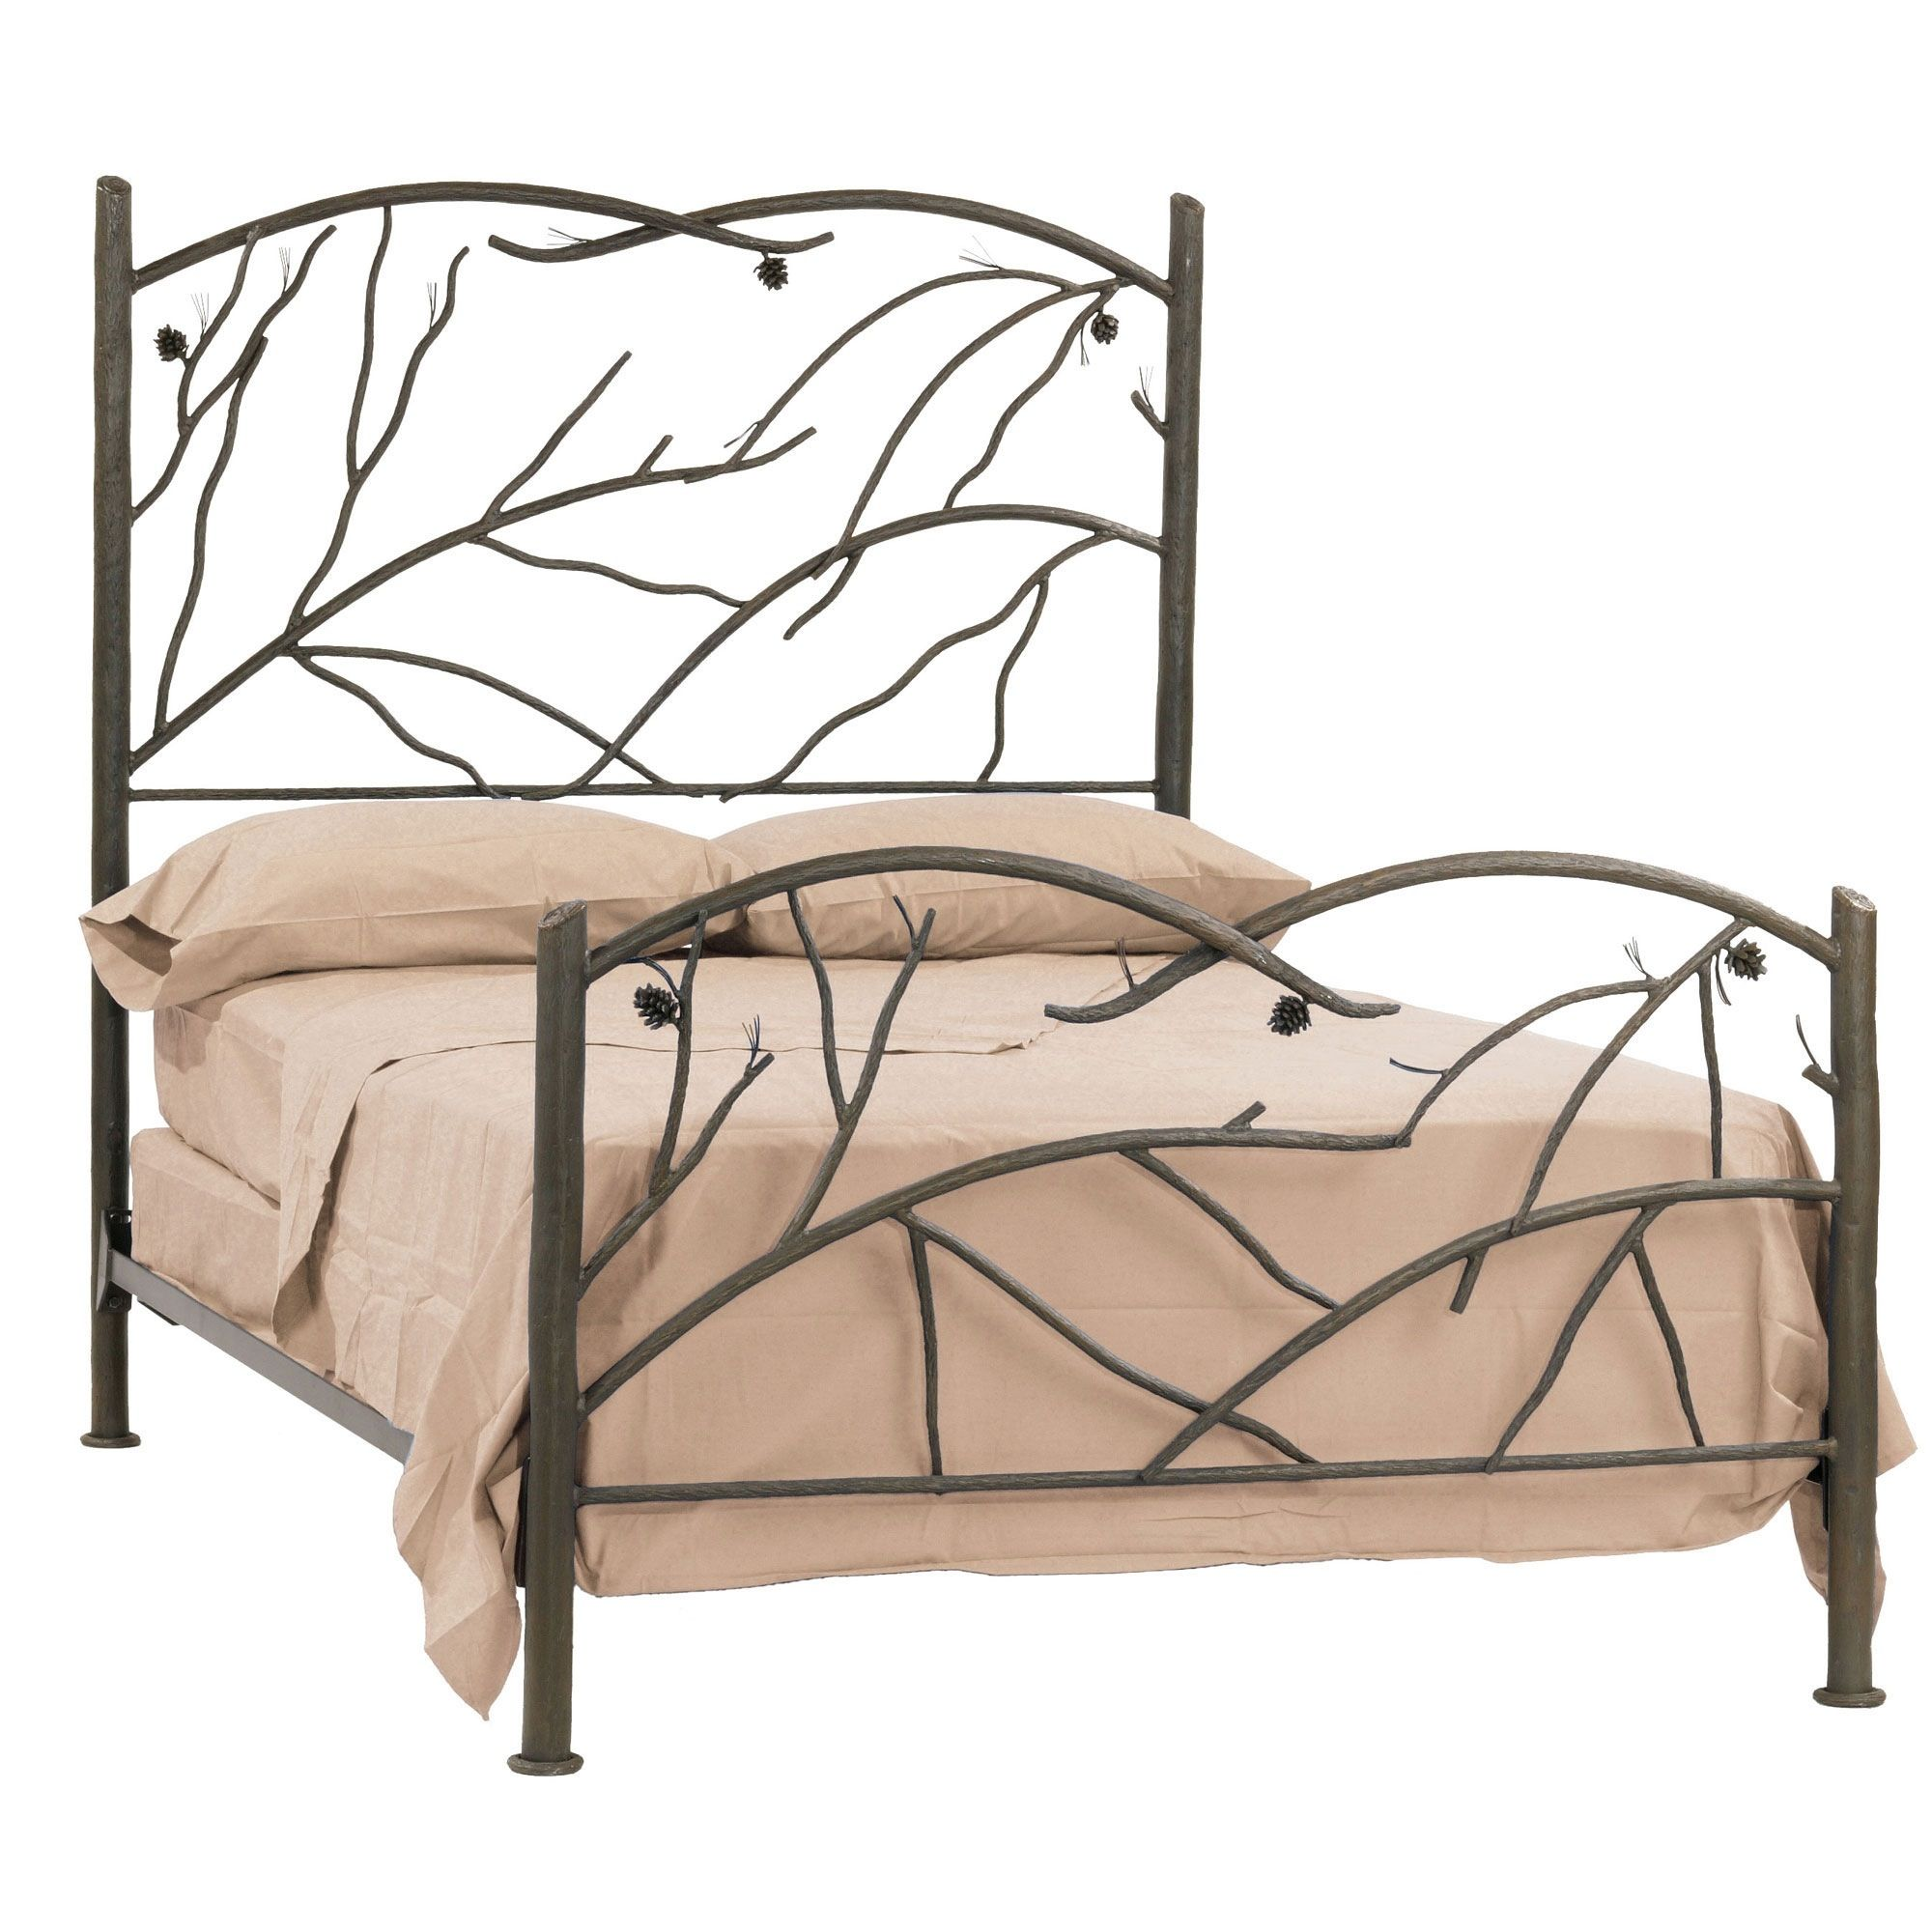 Wrought Iron Beds Style Strength Comfort Rustic Pine Bed Bedroom Designs Feng Shui Bedroom Two Bedroom Ap Iron Bed Wrought Iron Beds Wrought Iron Bed Frames